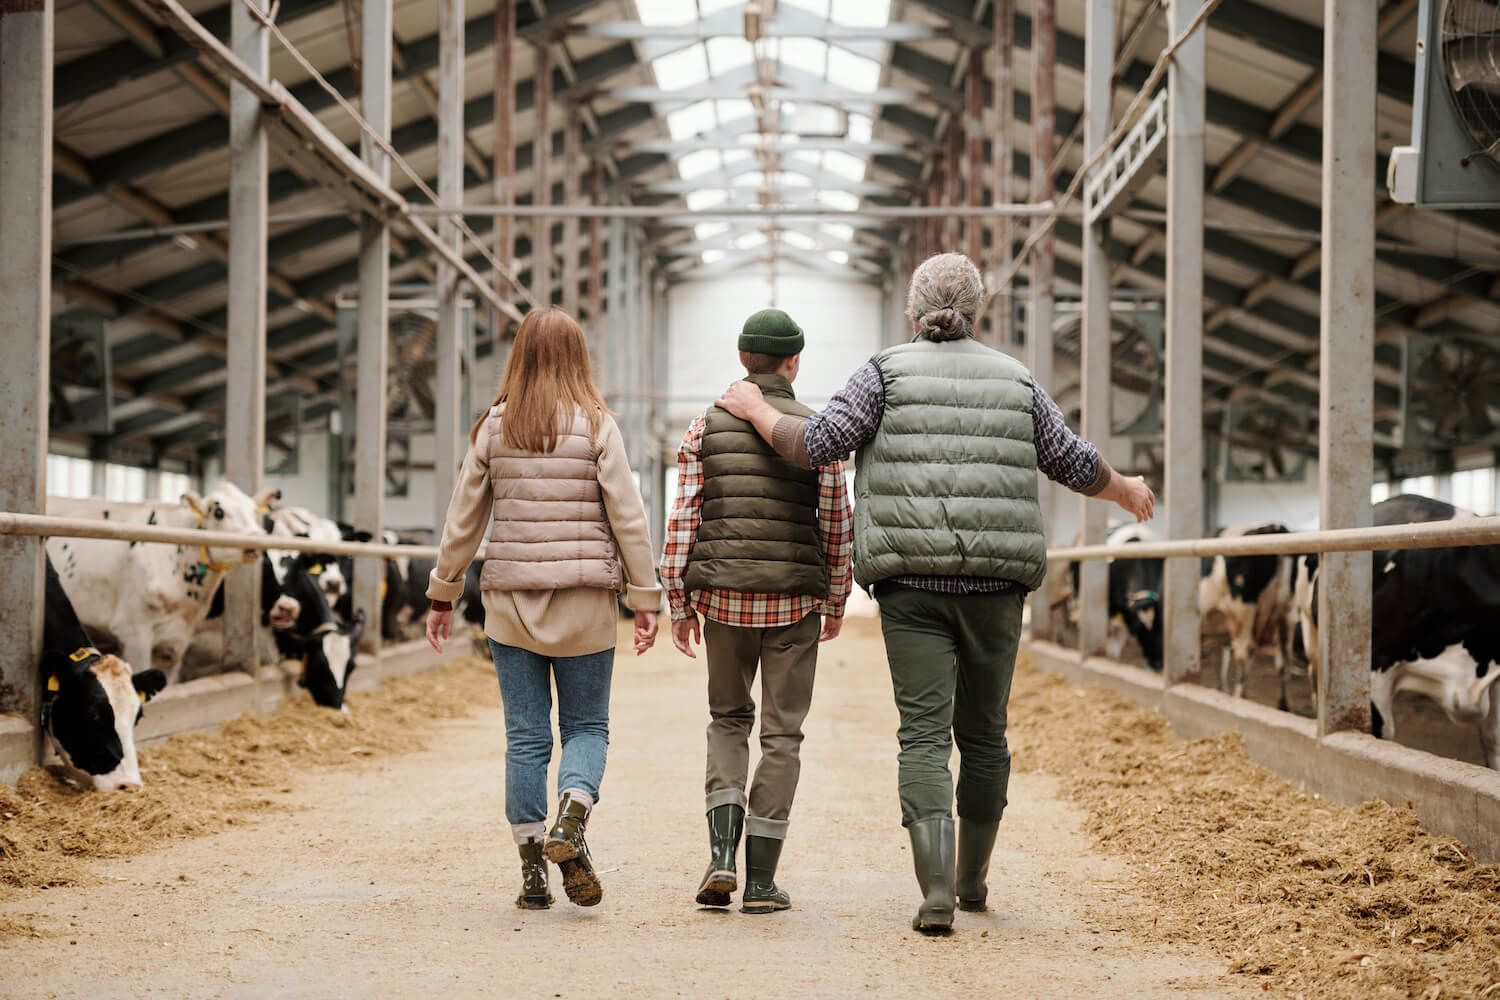 Rear view of father pointing at cows and sharing farm experience with son, whole family walking along cowshed together. January 2021